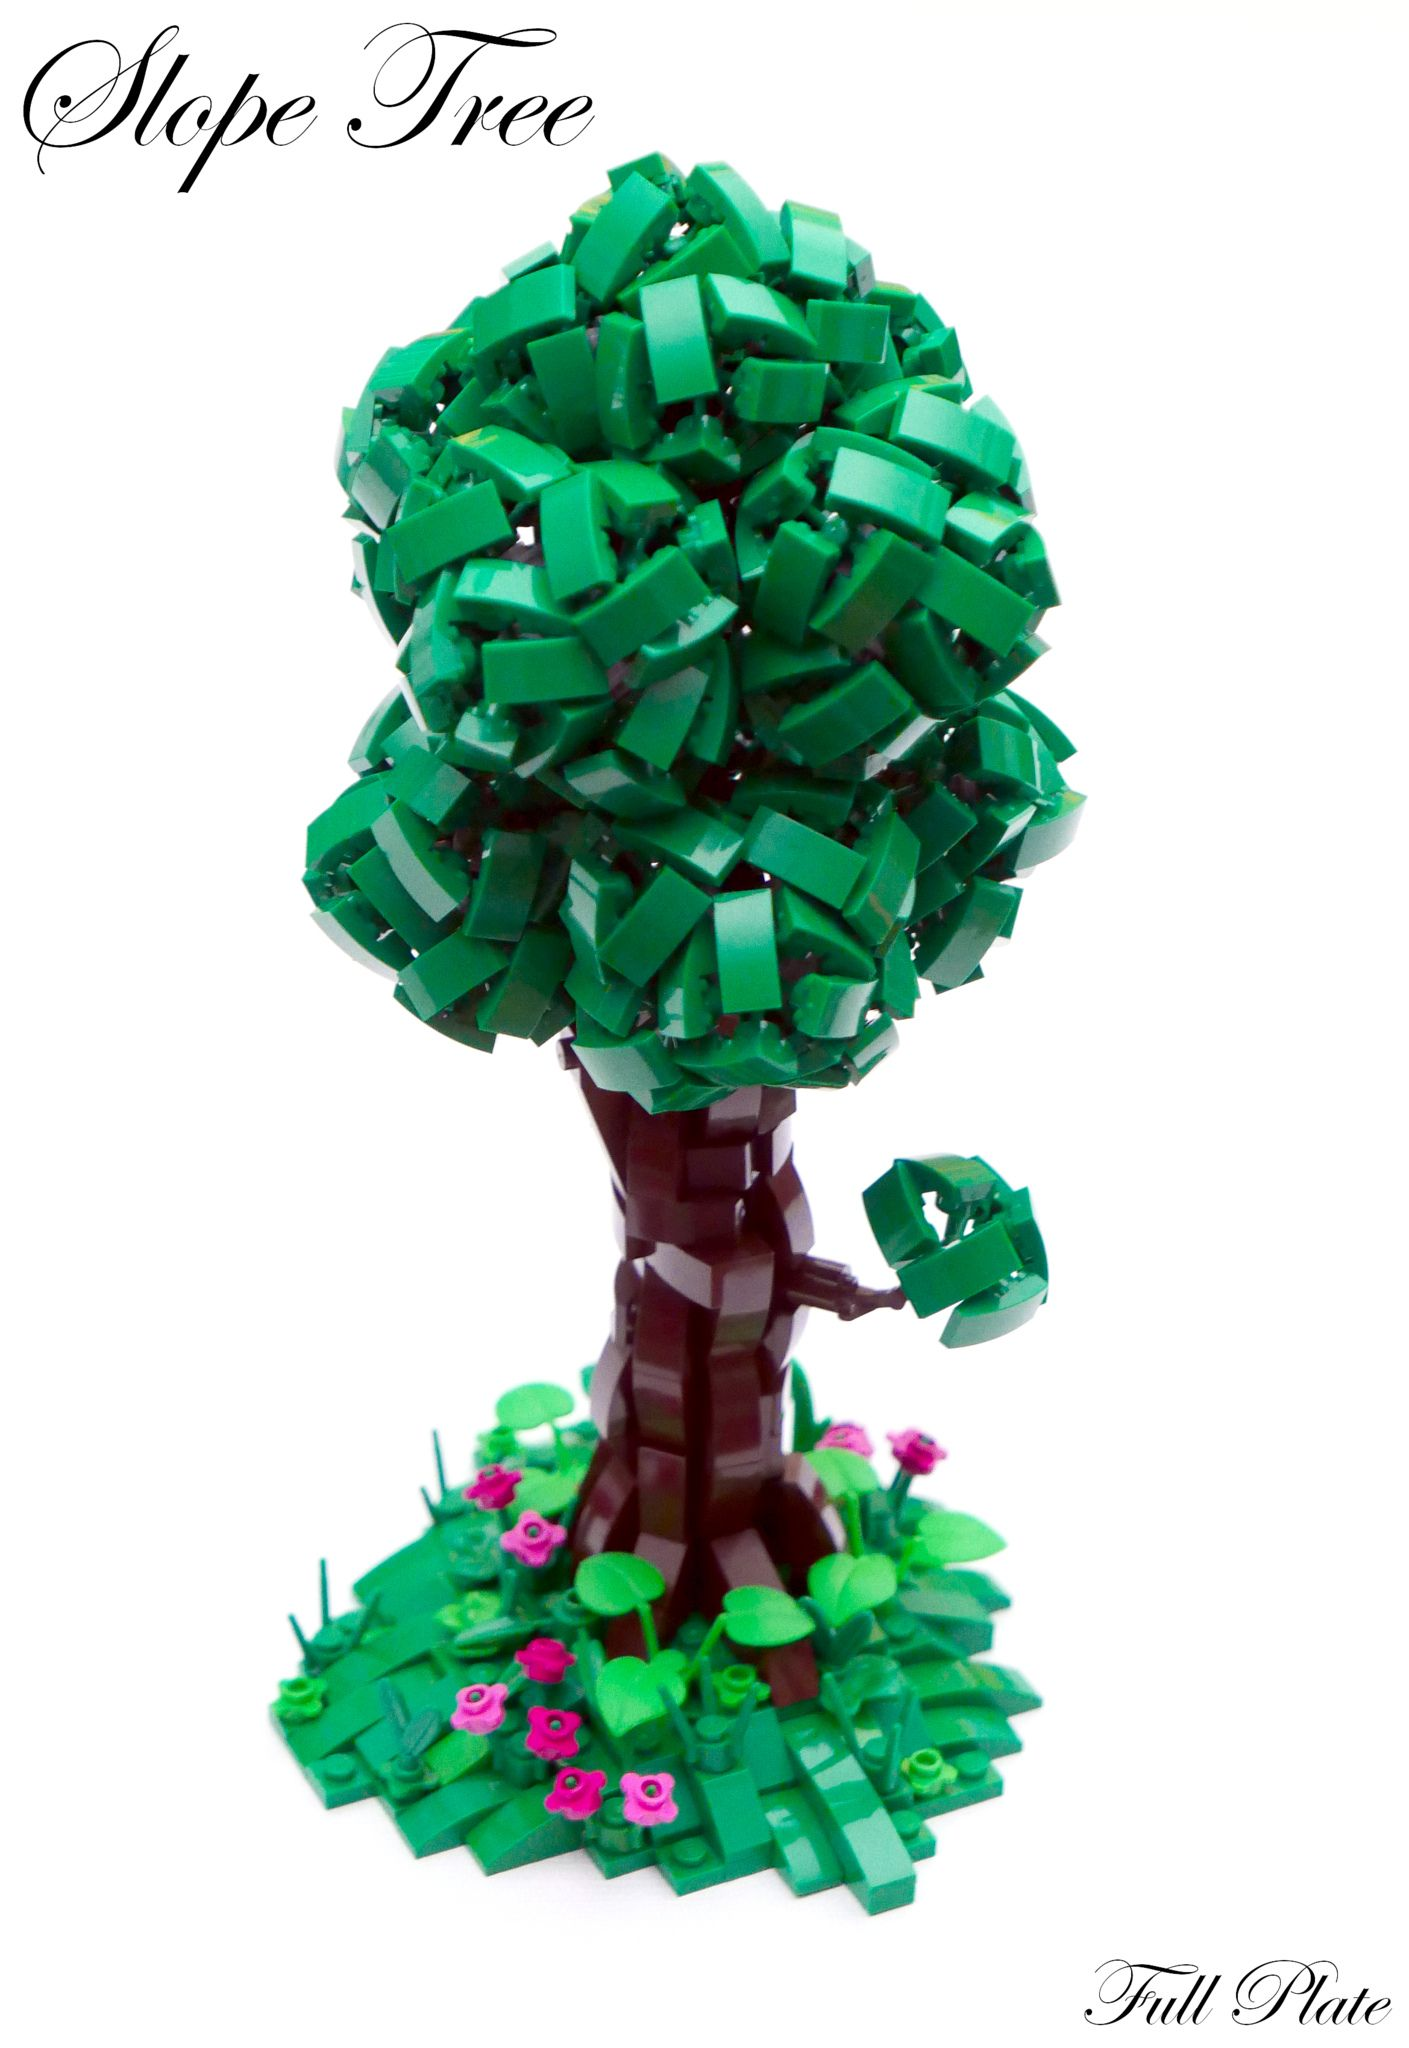 Slope Tree Lego tree, Lego for kids, Lego creations